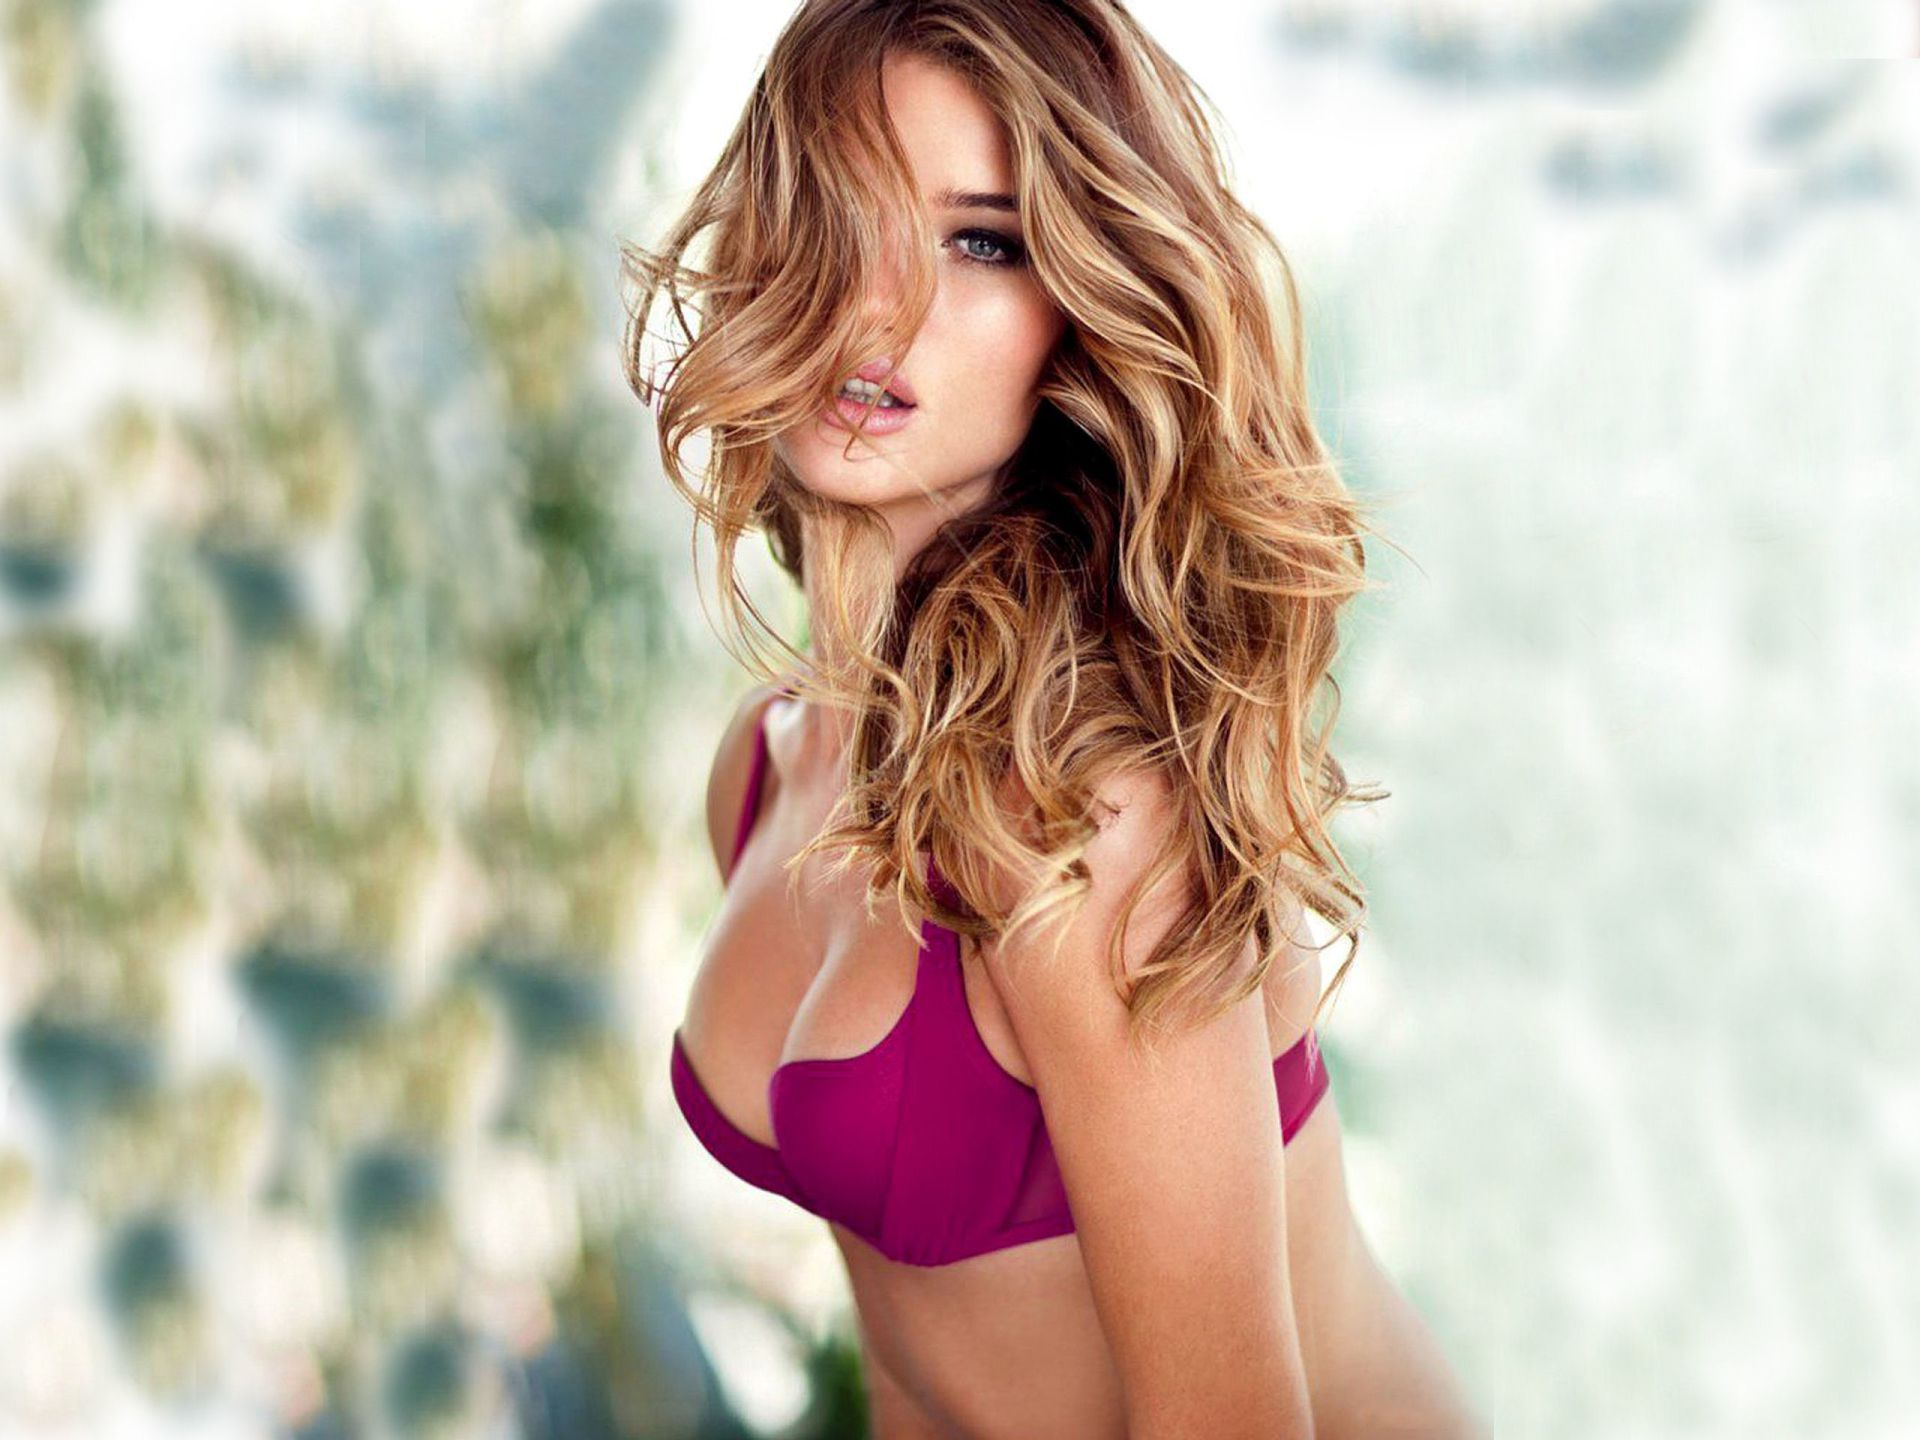 Rosie Huntington-Whiteley Wallpapers Backgrounds